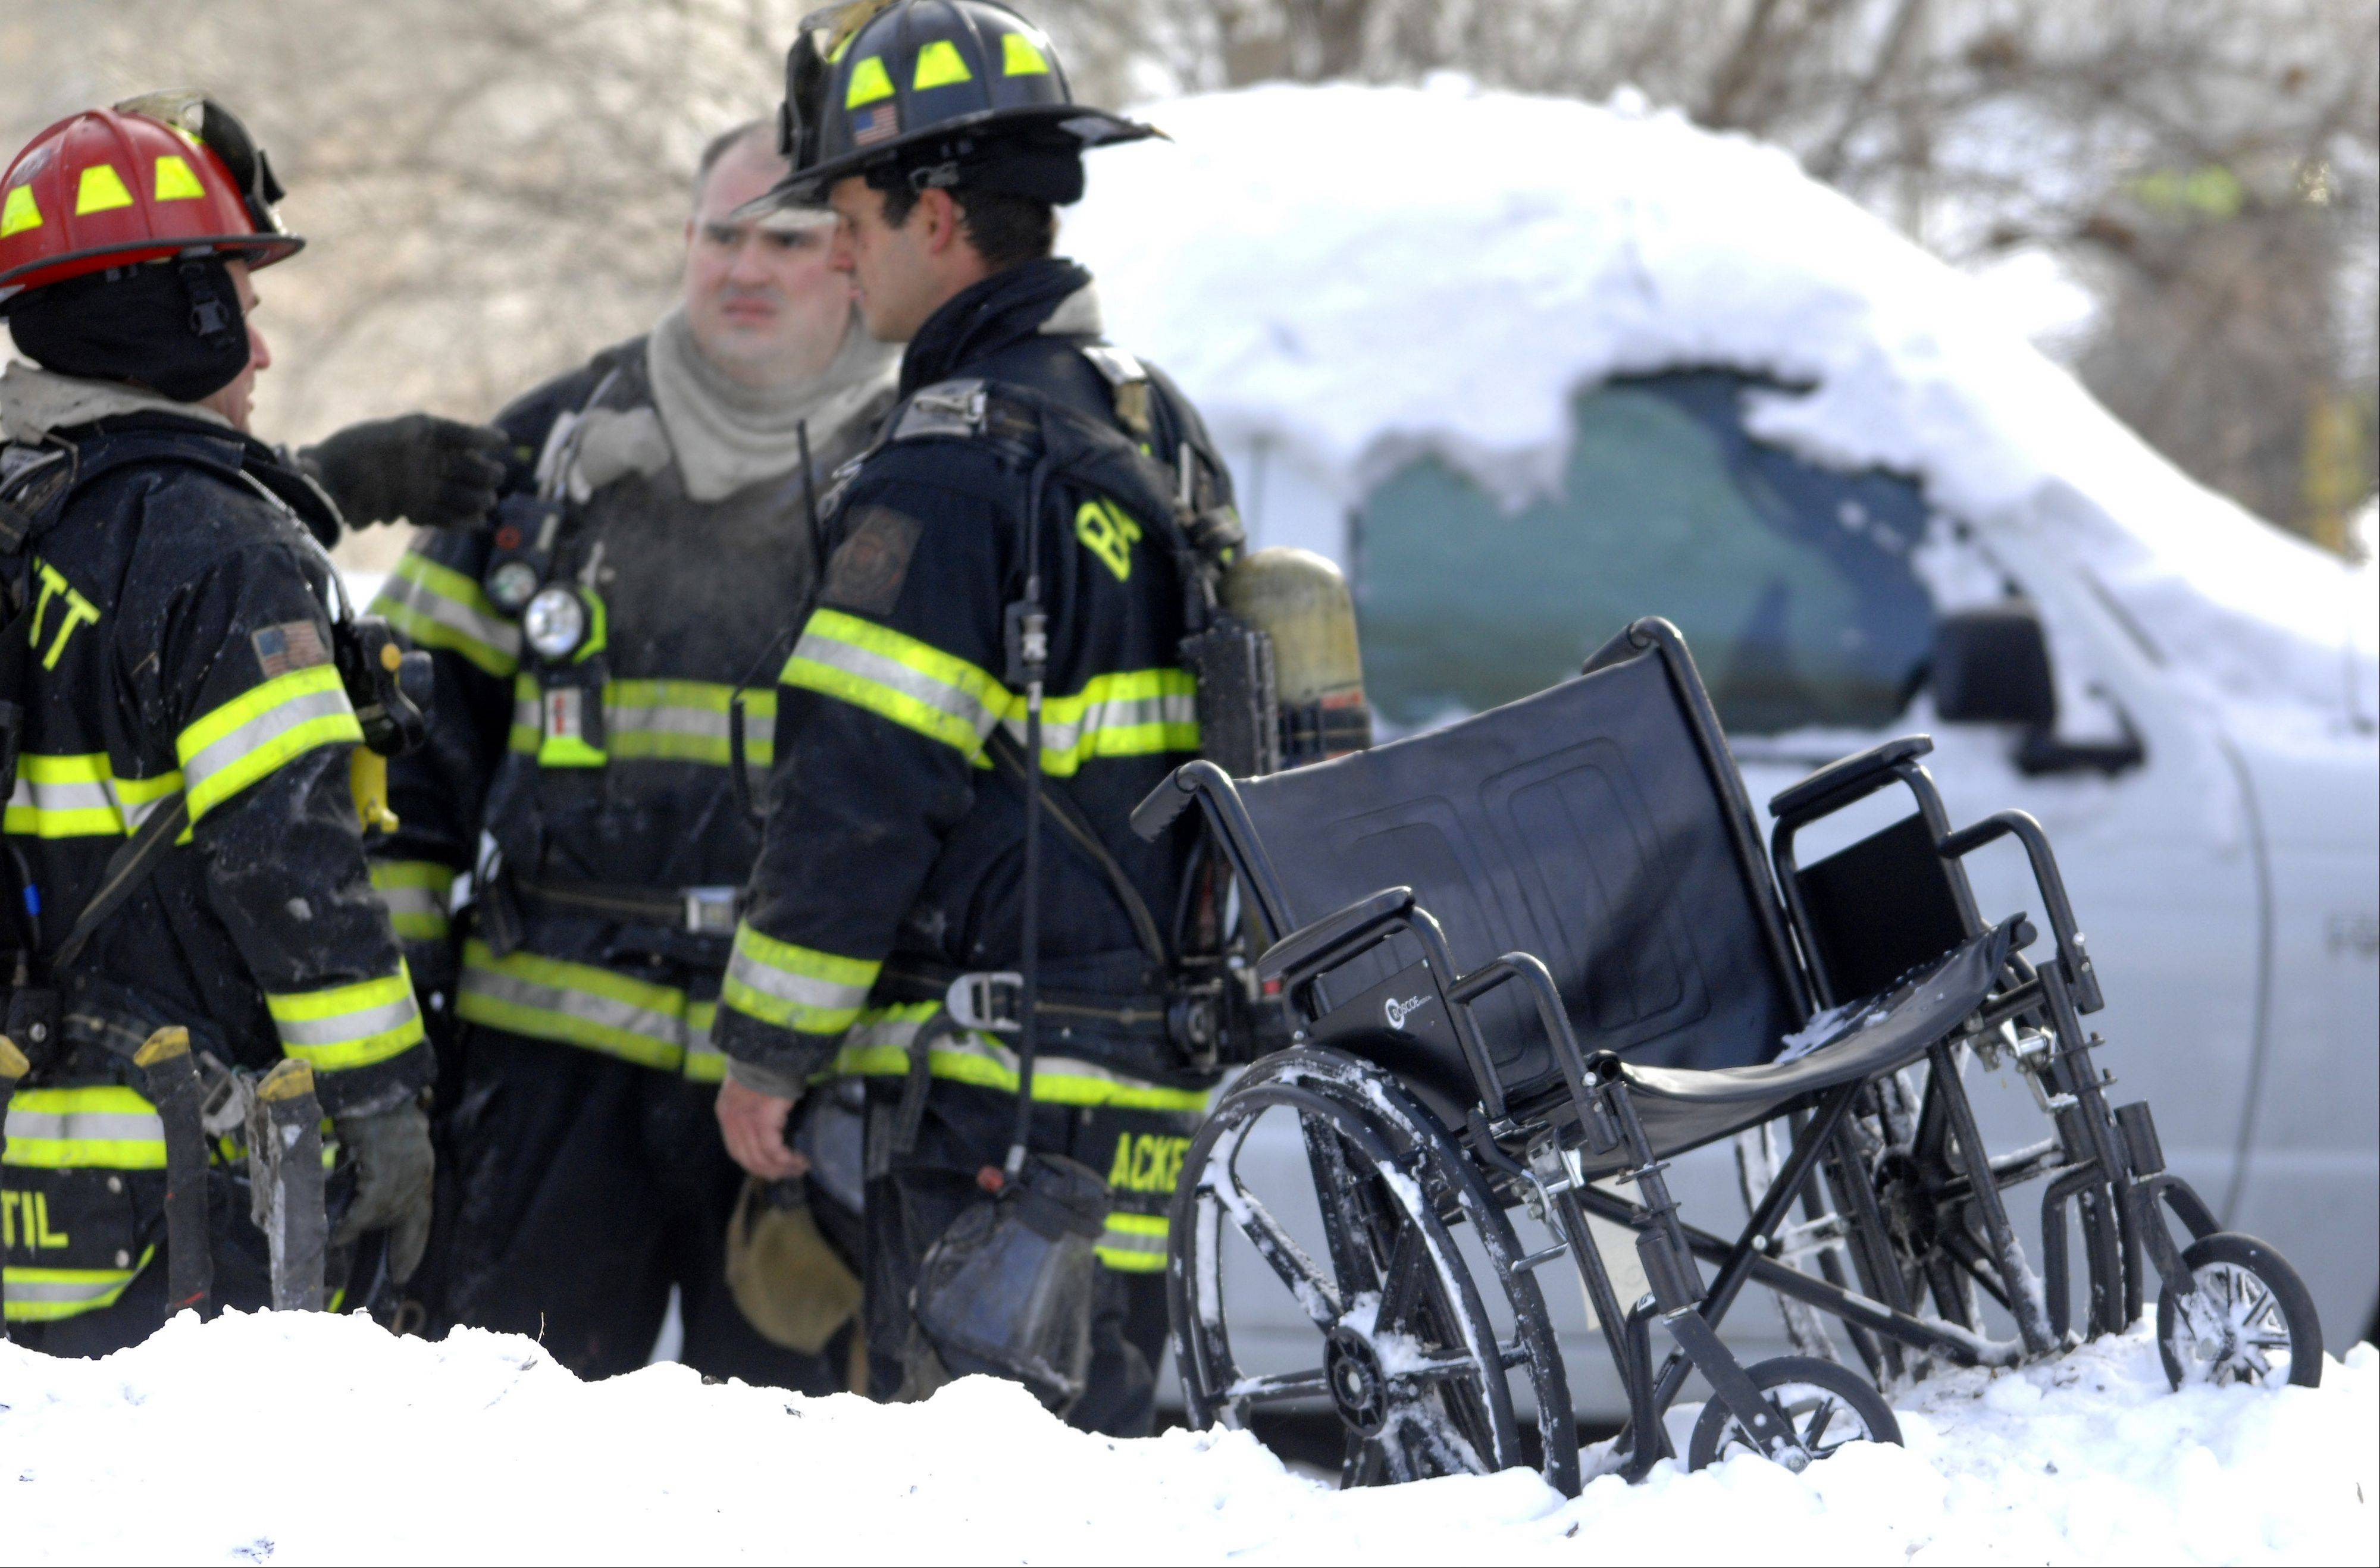 A wheelchair belonging to a woman who was rescued from a house fire Wednesday morning in South Elgin that killed her 72-year-old husband sits outside the fire scene.